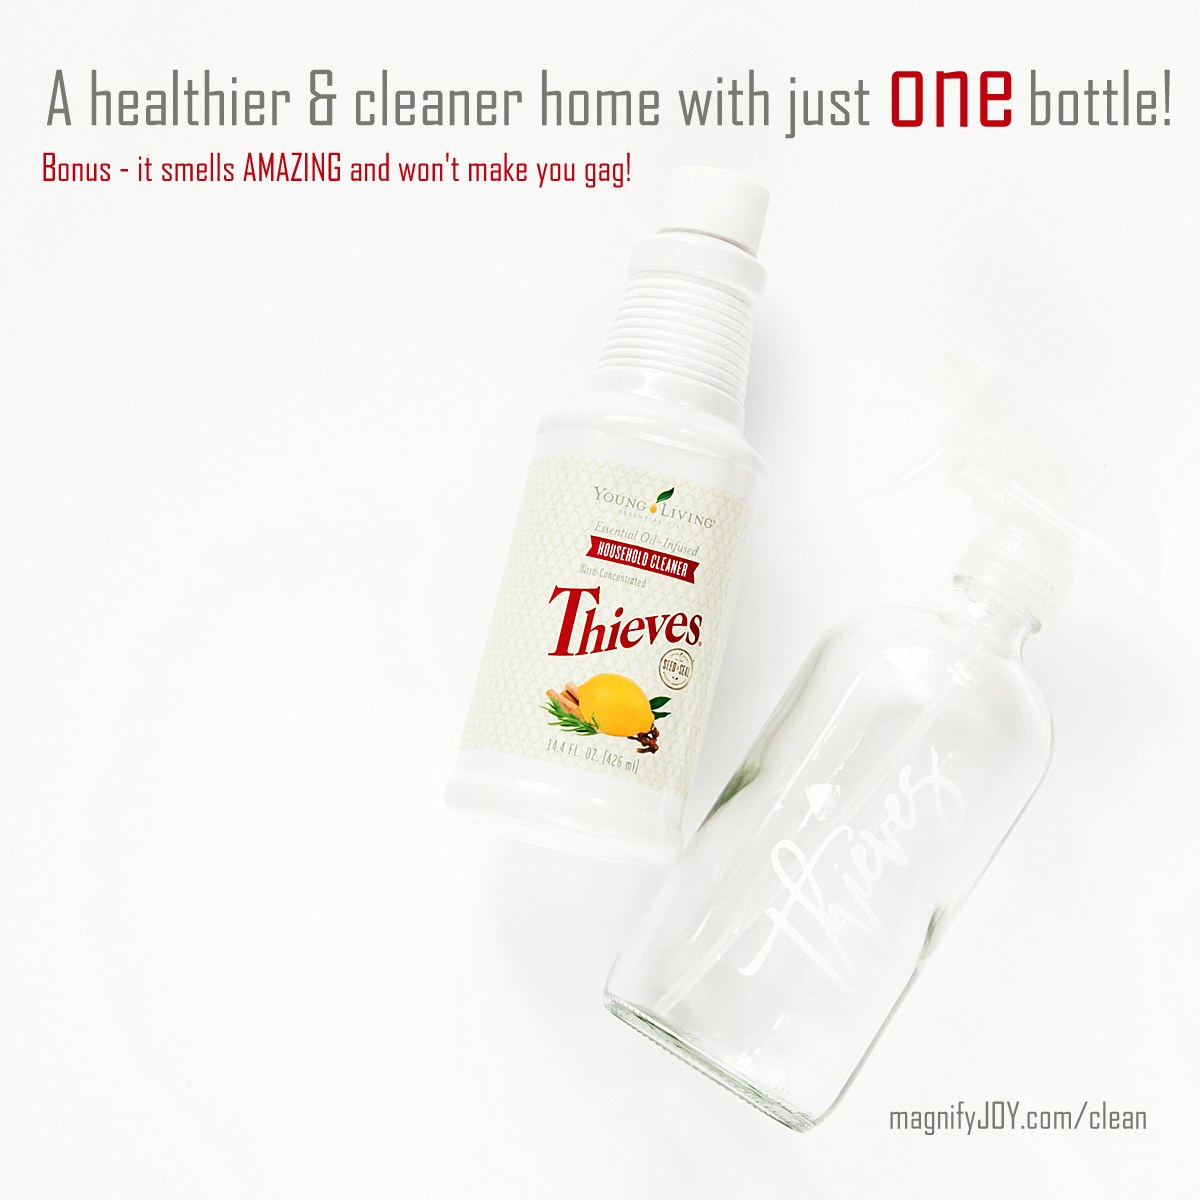 Thieves Household Cleaner Plant Based Healthier Non-Toxic Young Living MagnifyJOY